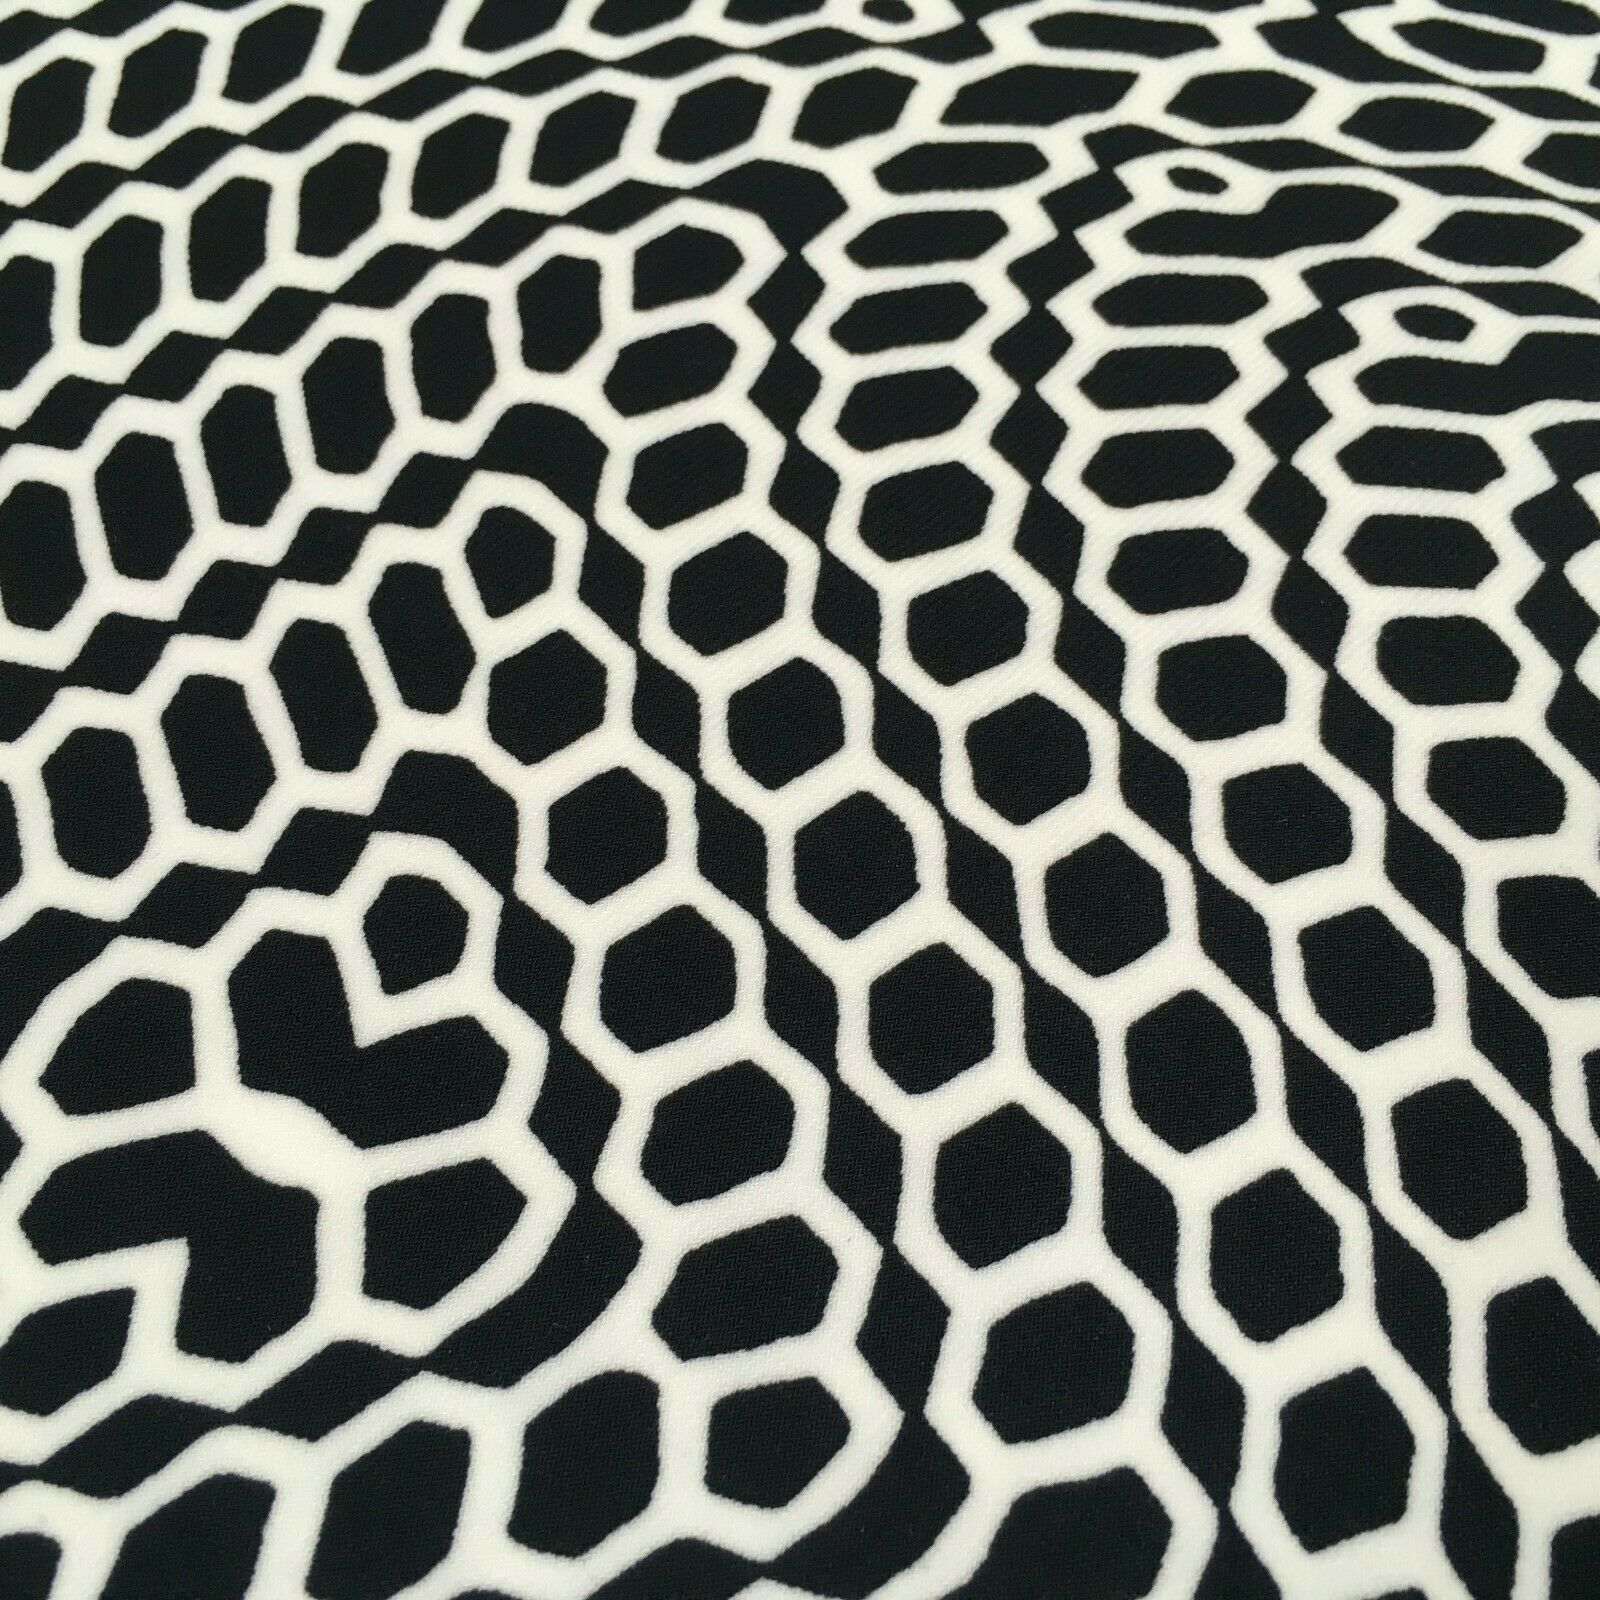 Black geometric Stretch Ity Spandex Dress Fabric 147 cm M1220-6 Mtex